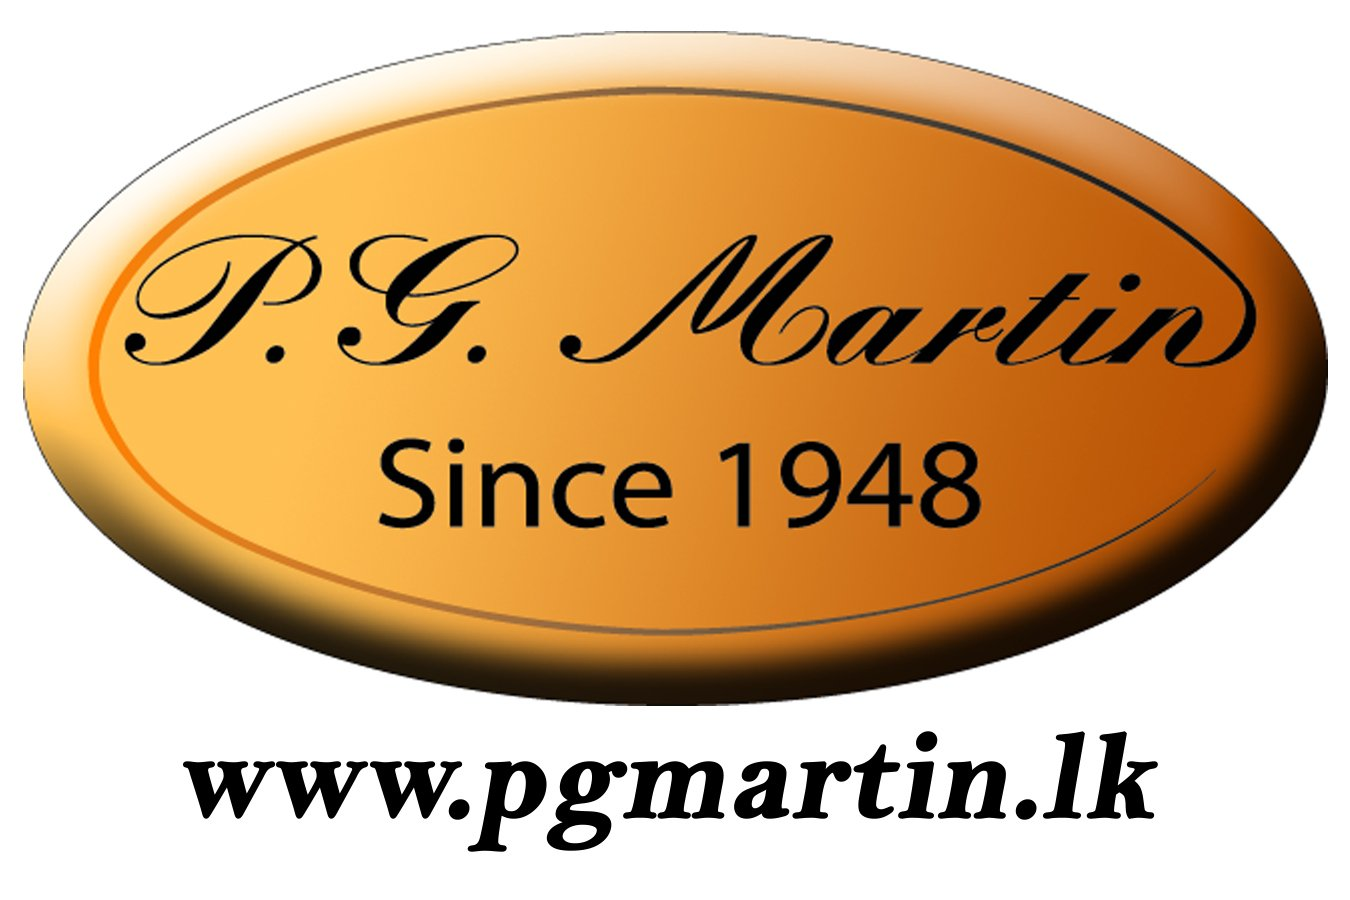 P.G MARTIN online sale listings at Kapruka